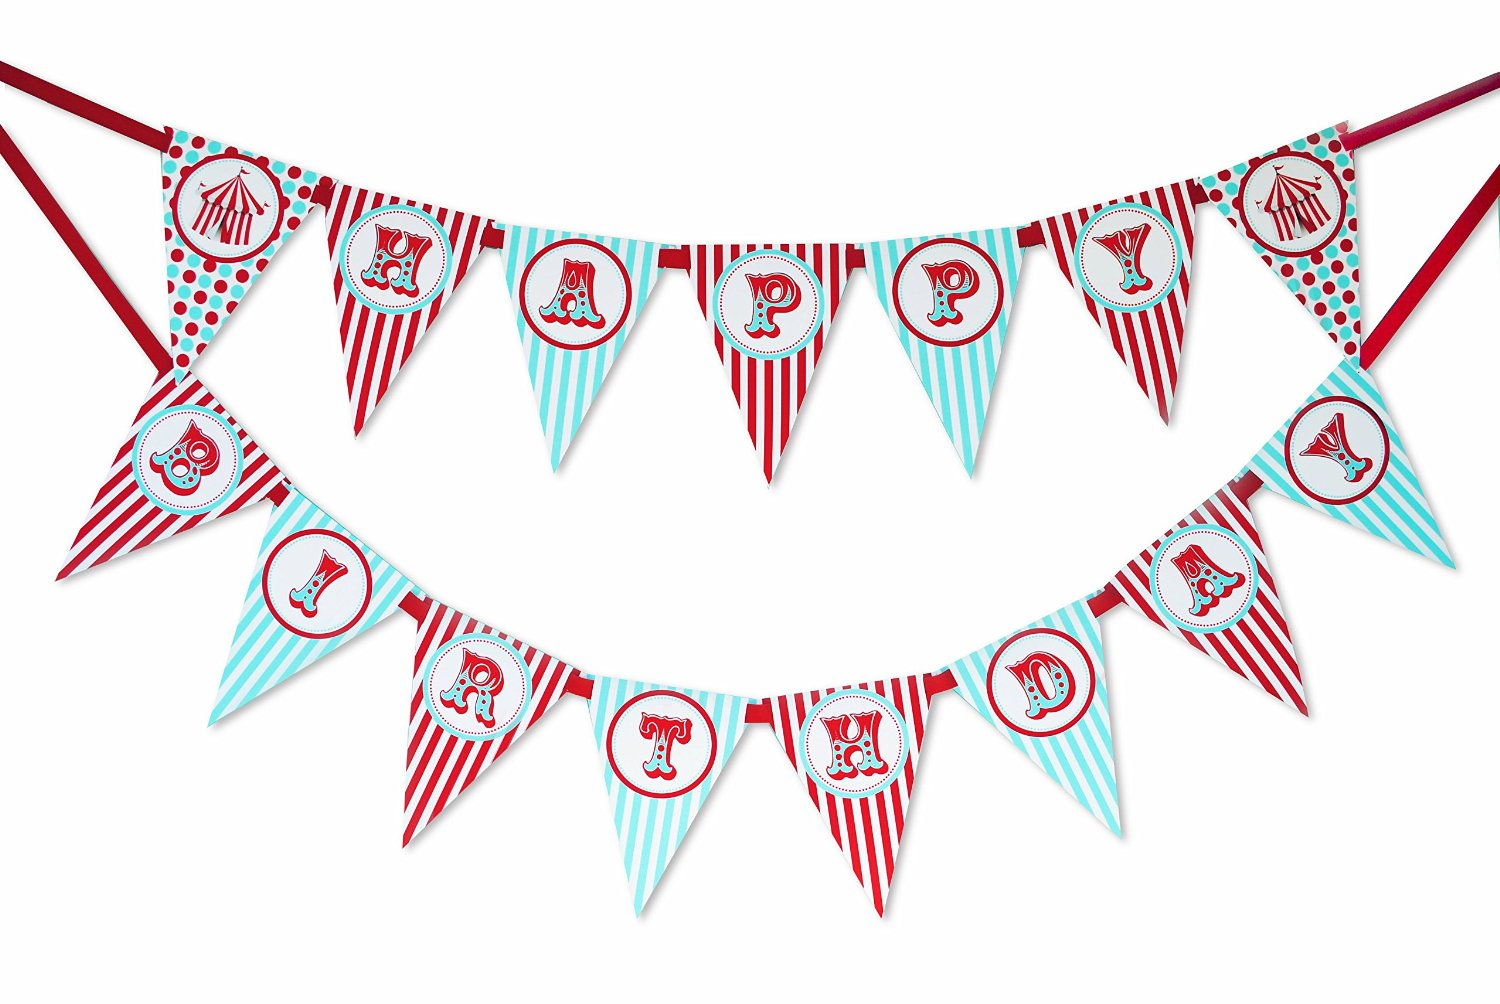 Pennant clipart birthday banner. Circus carnival happy poppartiesink